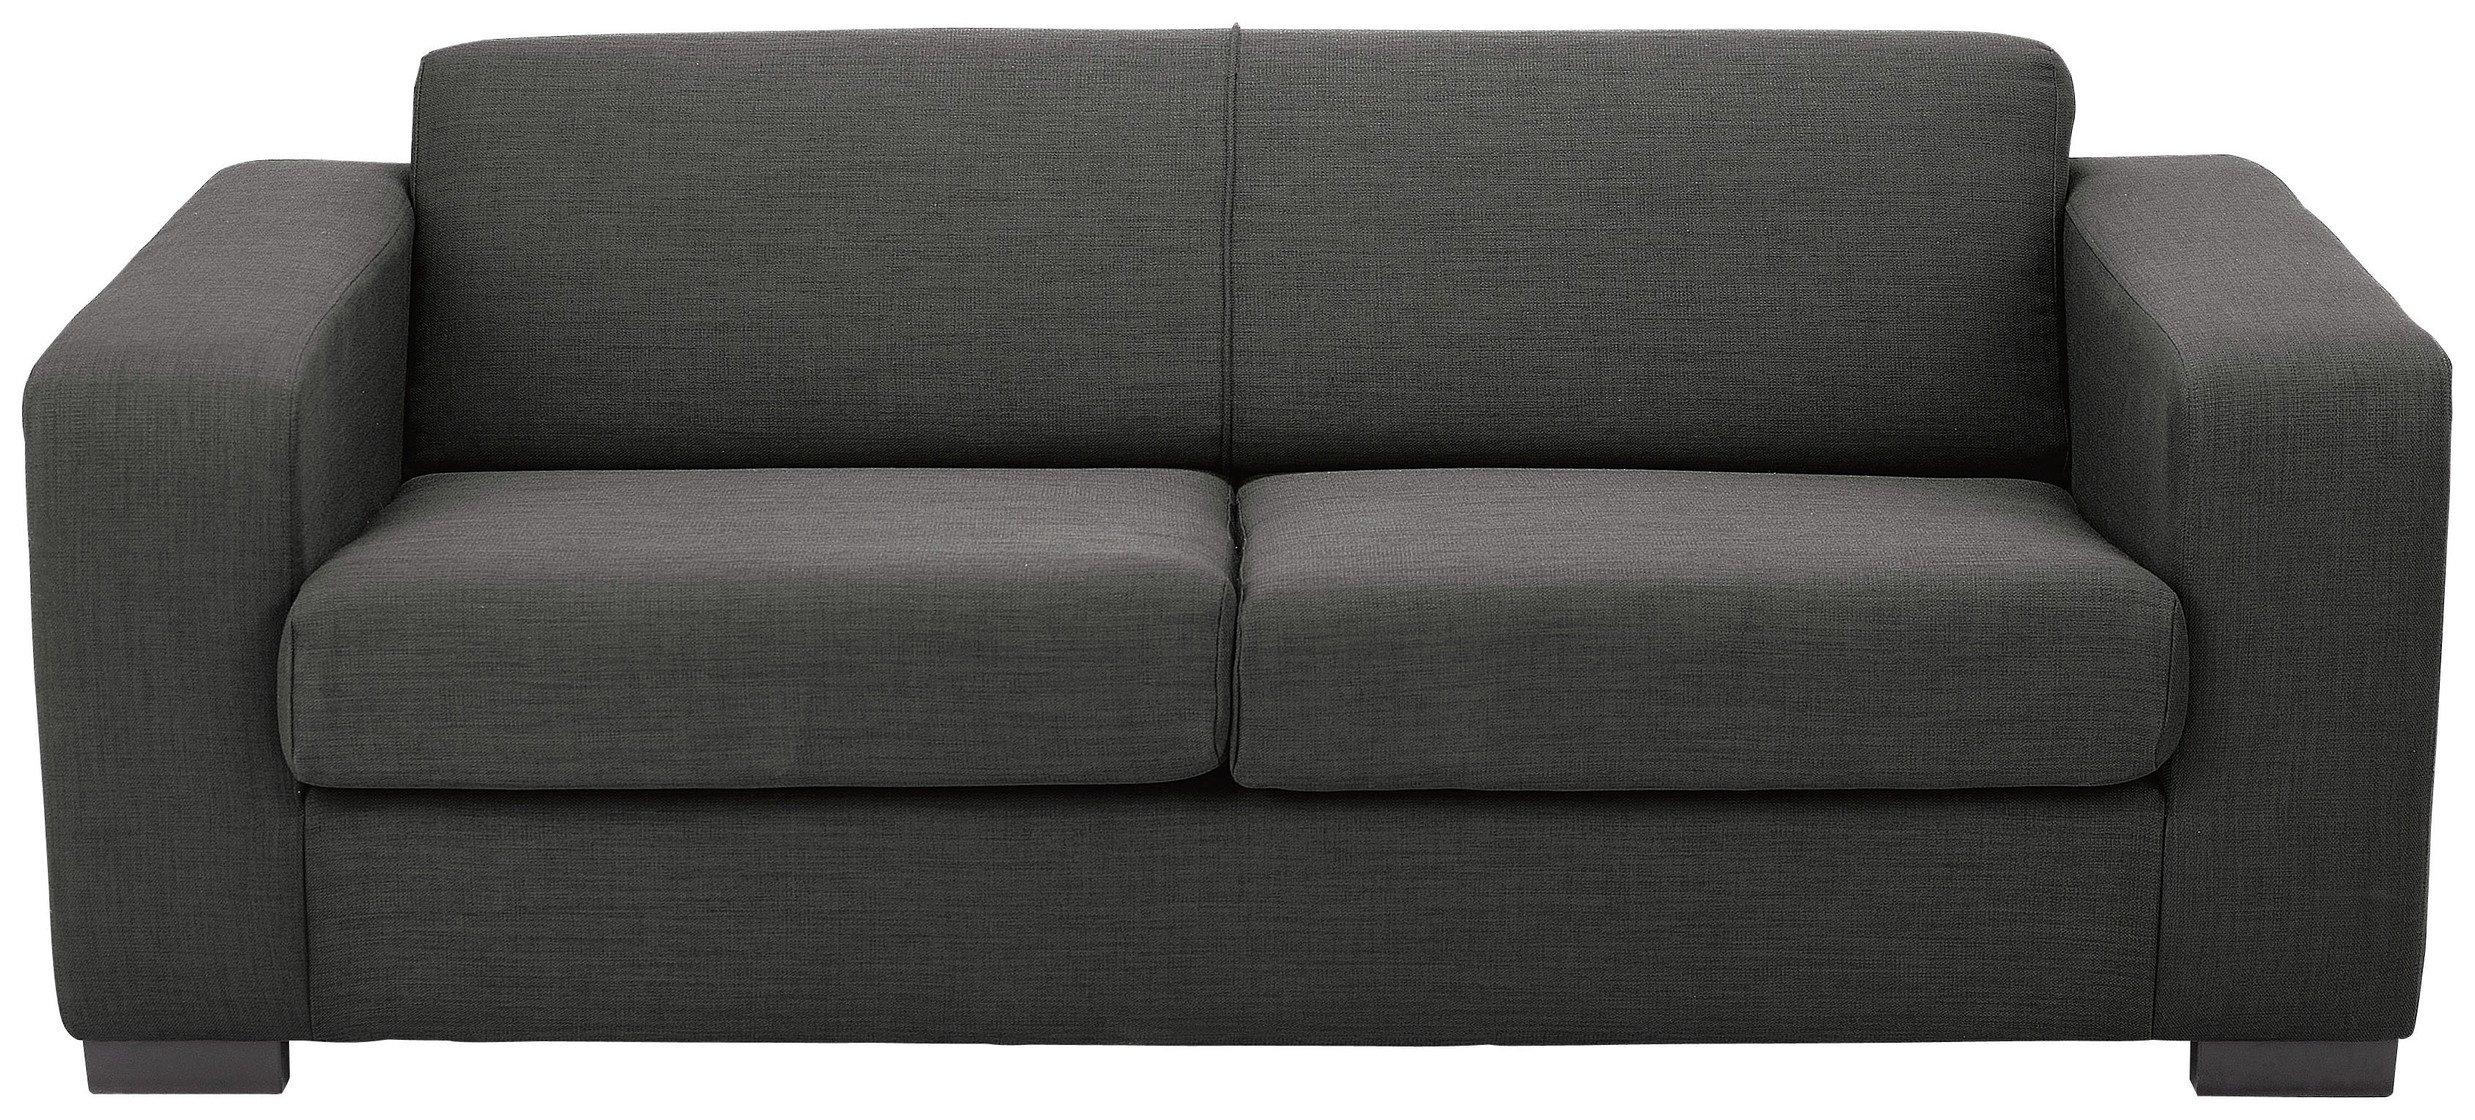 argos ava fabric sofa review how to use bed sheet as cover brand hygena current offers